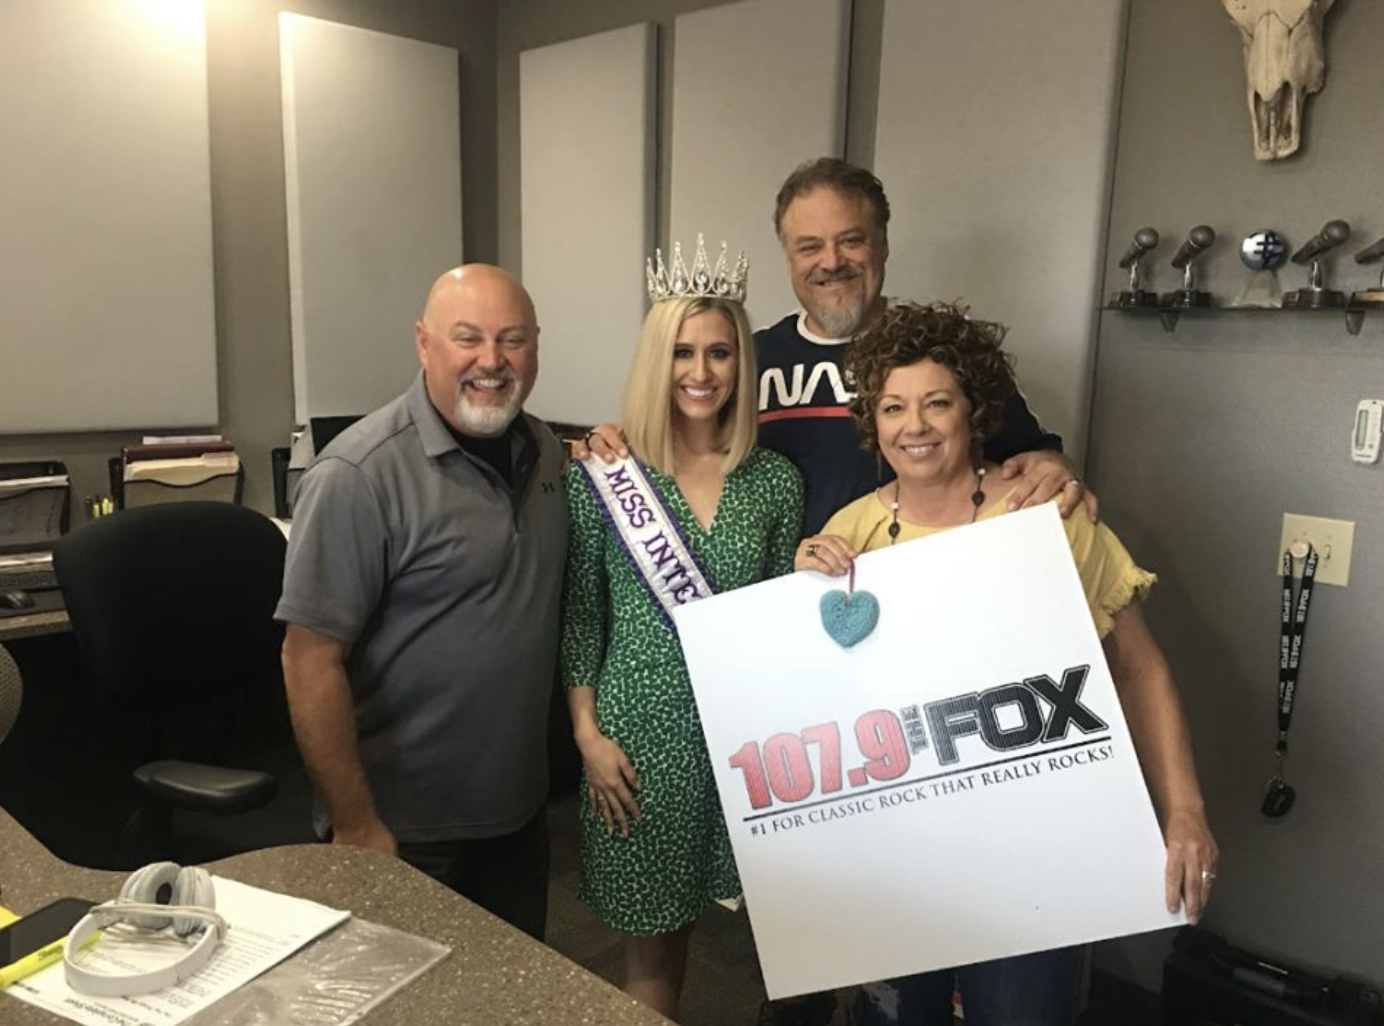 Radio Interview on 107.9 The Fox during World Suicide Prevention Month.